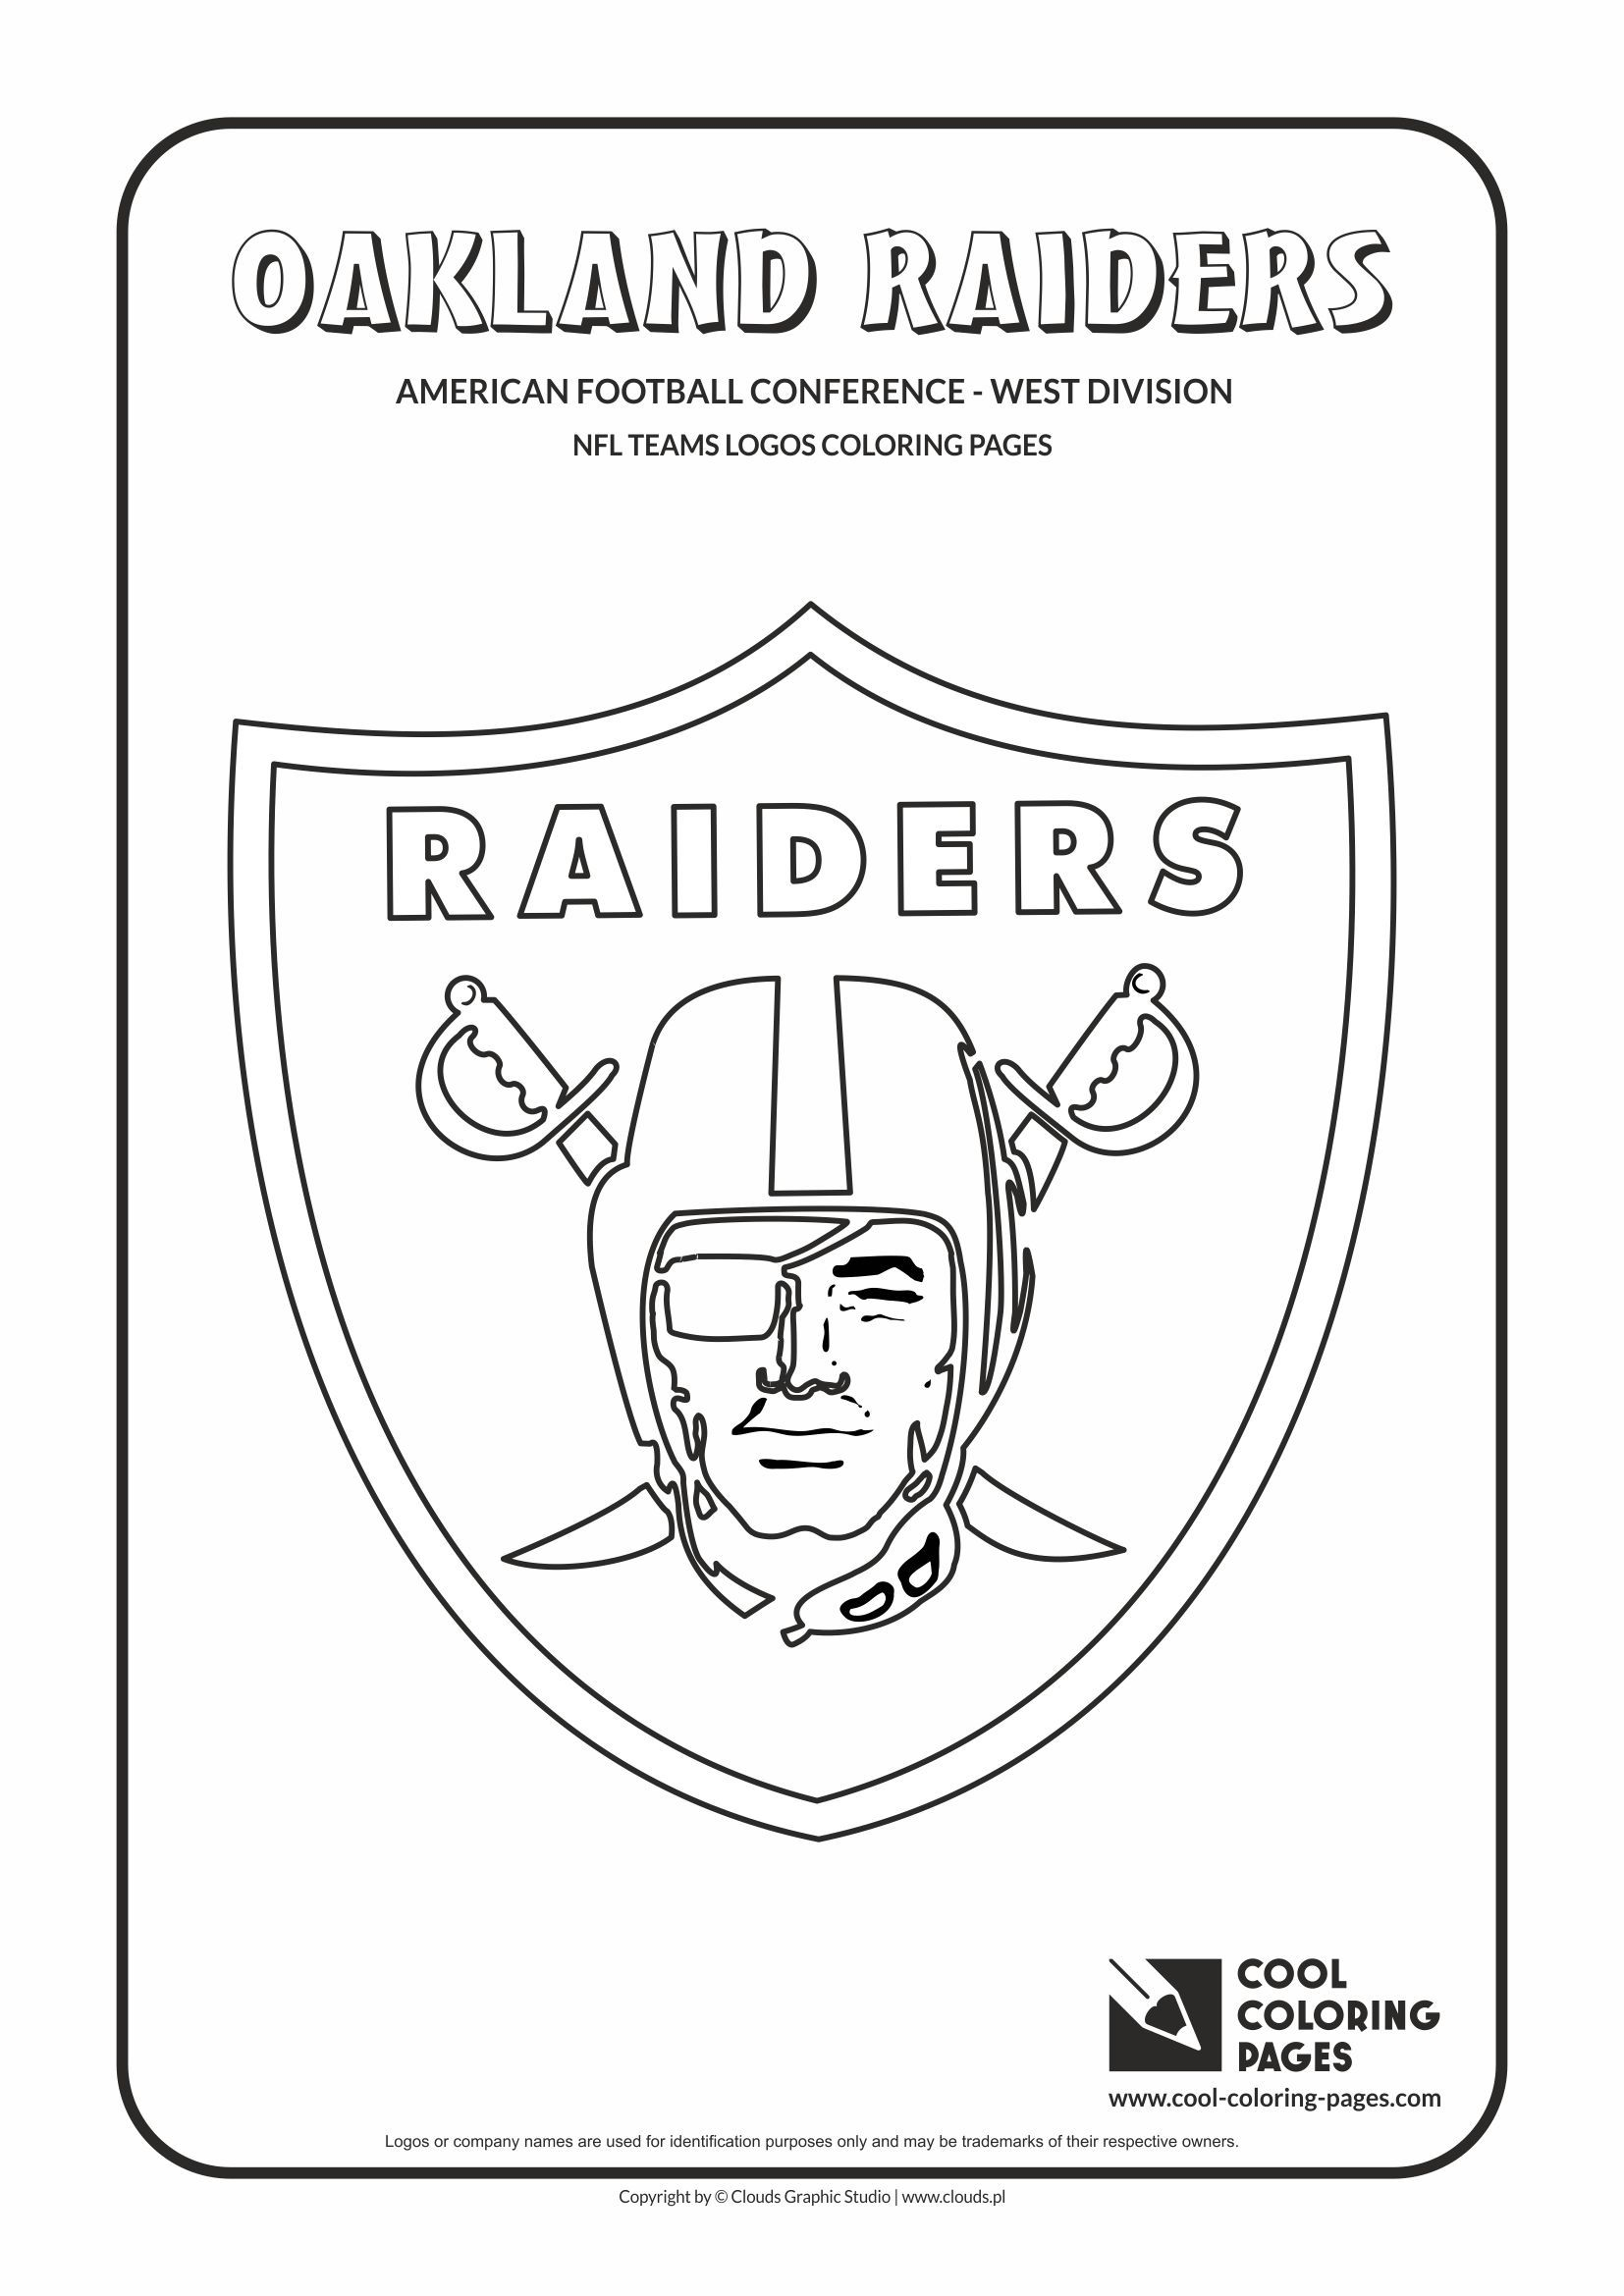 Cool Coloring Pages Nfl American Football Clubs Logos Cool Coloring Pages Nfl